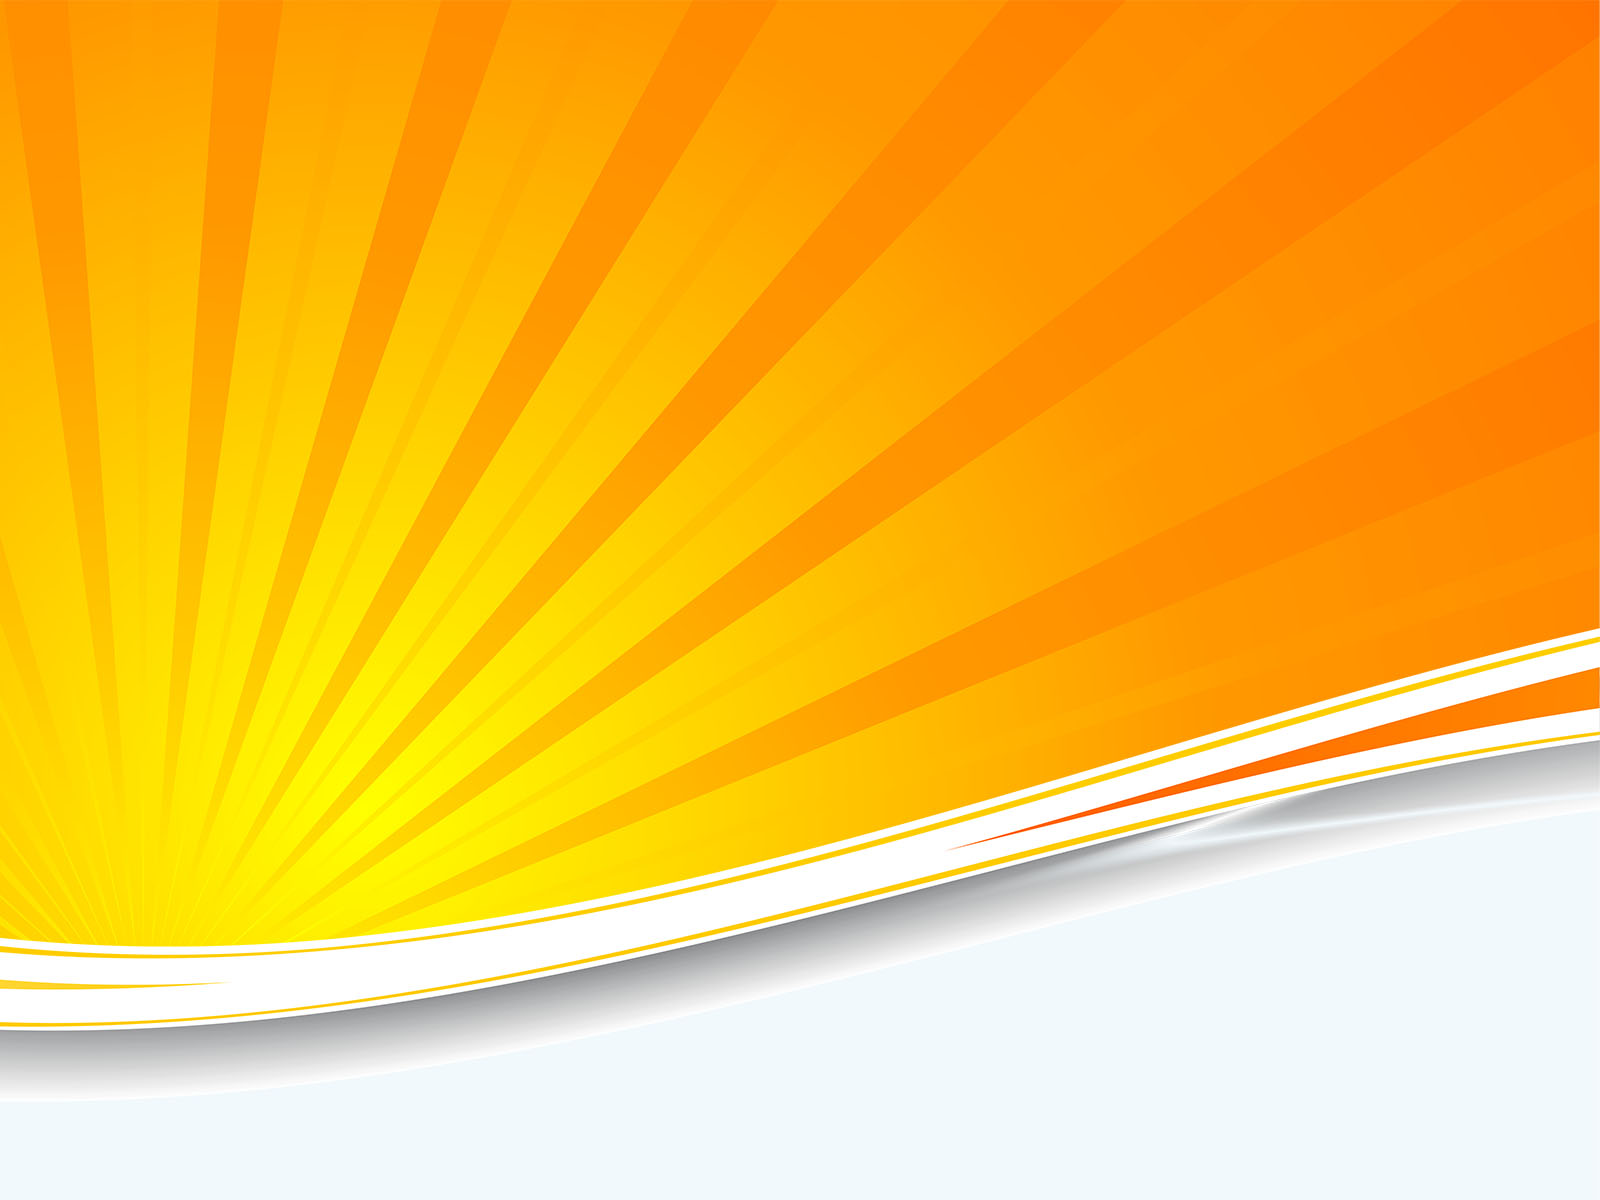 Orange Sunburst Powerpoint Templates